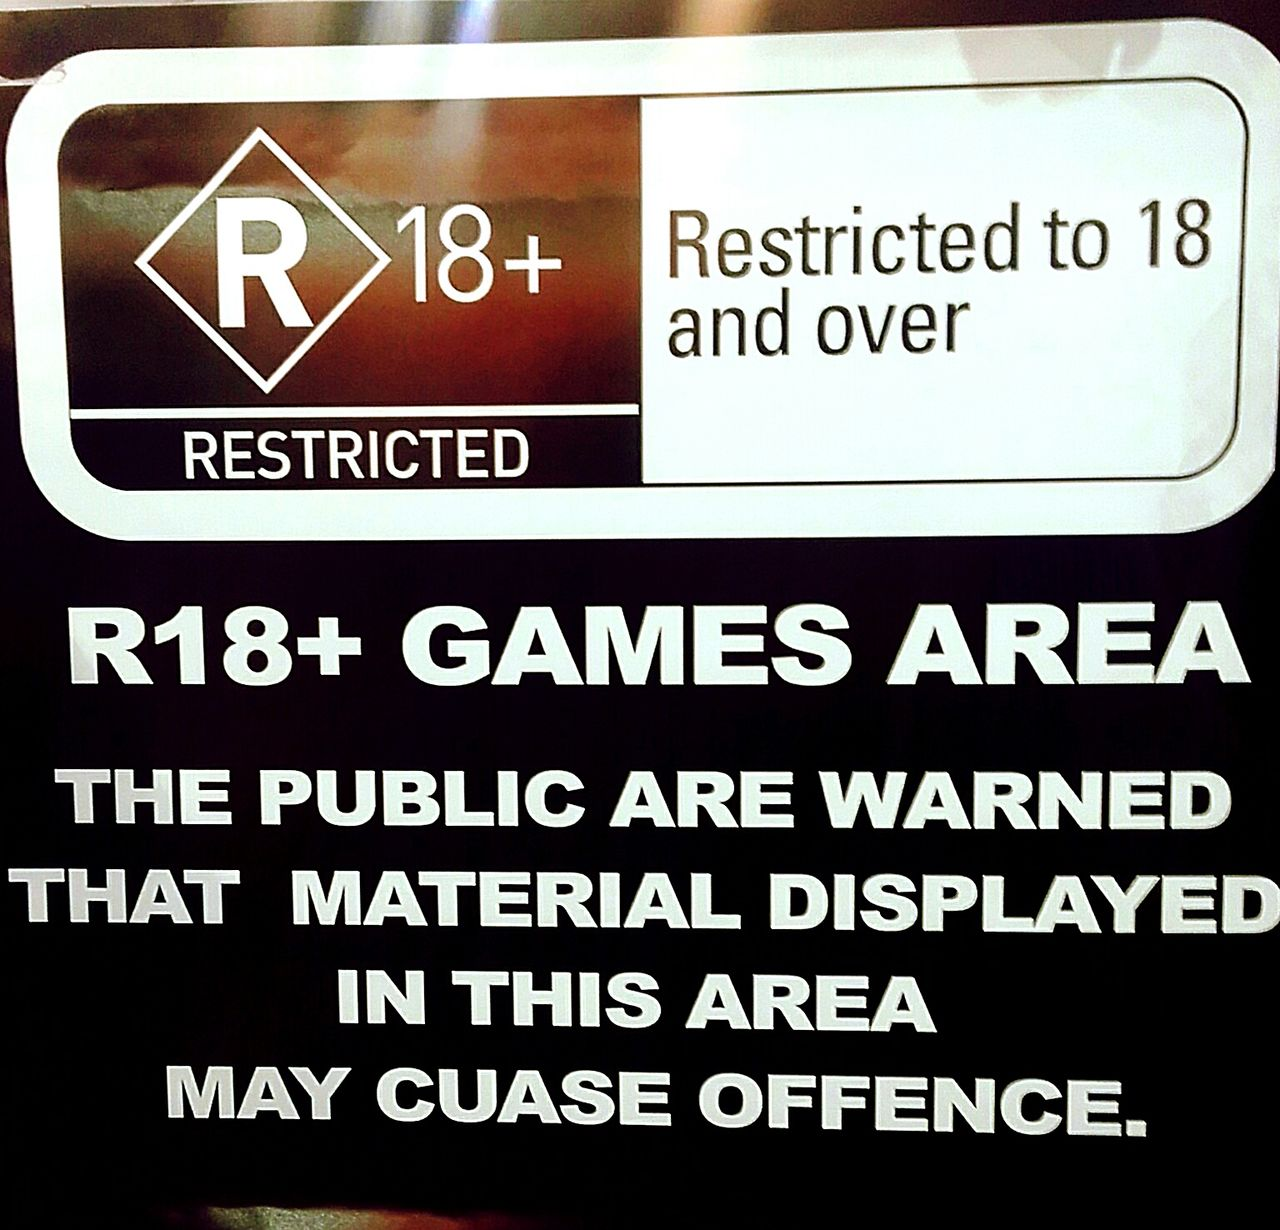 Text Notice Sign AlphaNumeric Alphabetical & Numerical Warning Sign Warning Warning Signs  Warningsign Warningstickerart Restricted Restricted Area Restrictedarea Restricted Zone 18+ 18+only 18+ Older Over18yearsold R18+ Over18 Signage Signs SignSignEverywhereASign SignsSignsAndMoreSigns Signs_collection